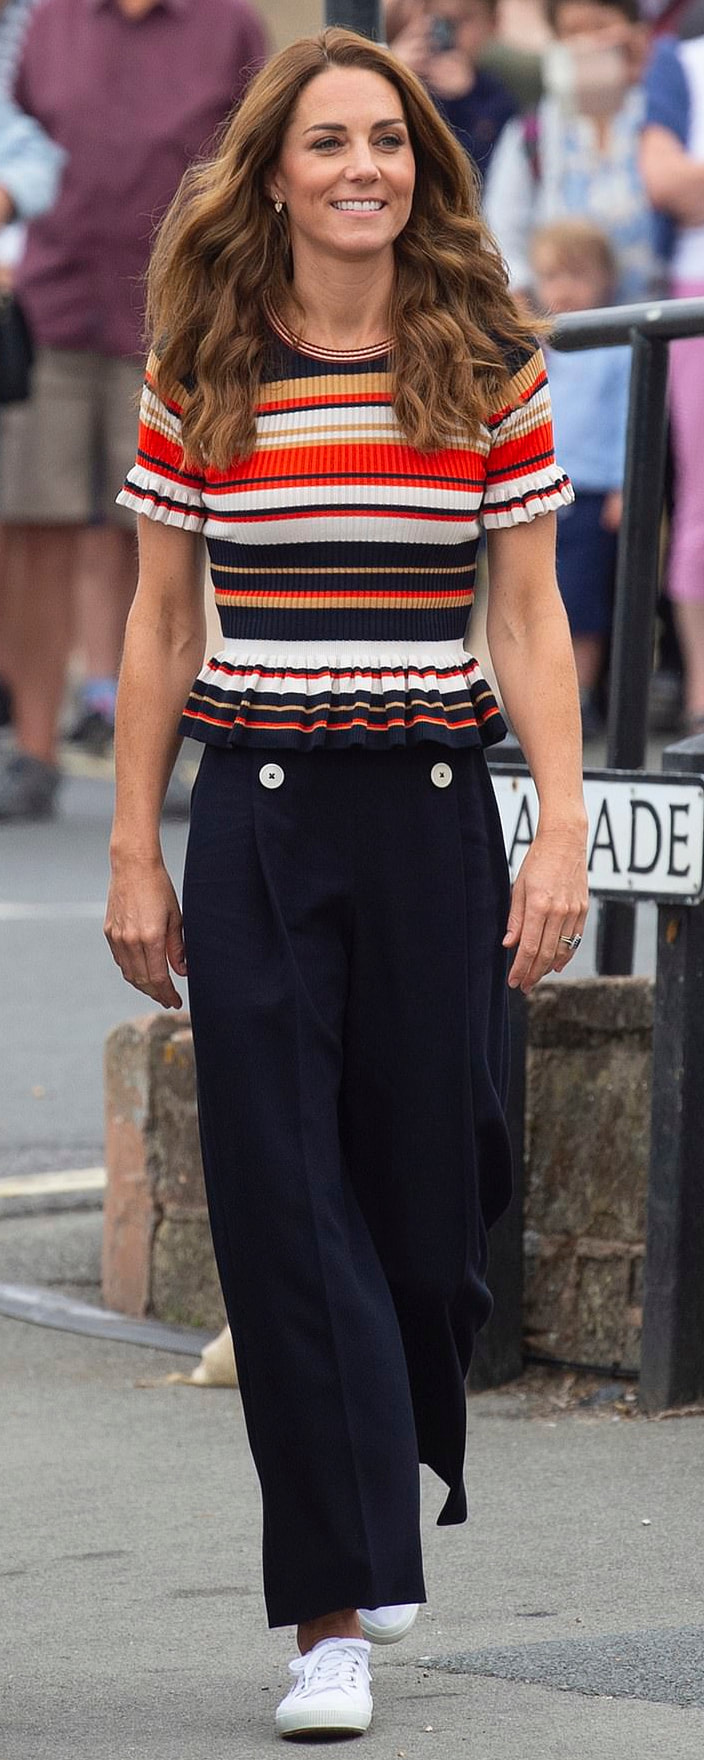 Sandro Striped Frilled Knit Top as seen on Kate Middleton, The Duchess of Cambridge.